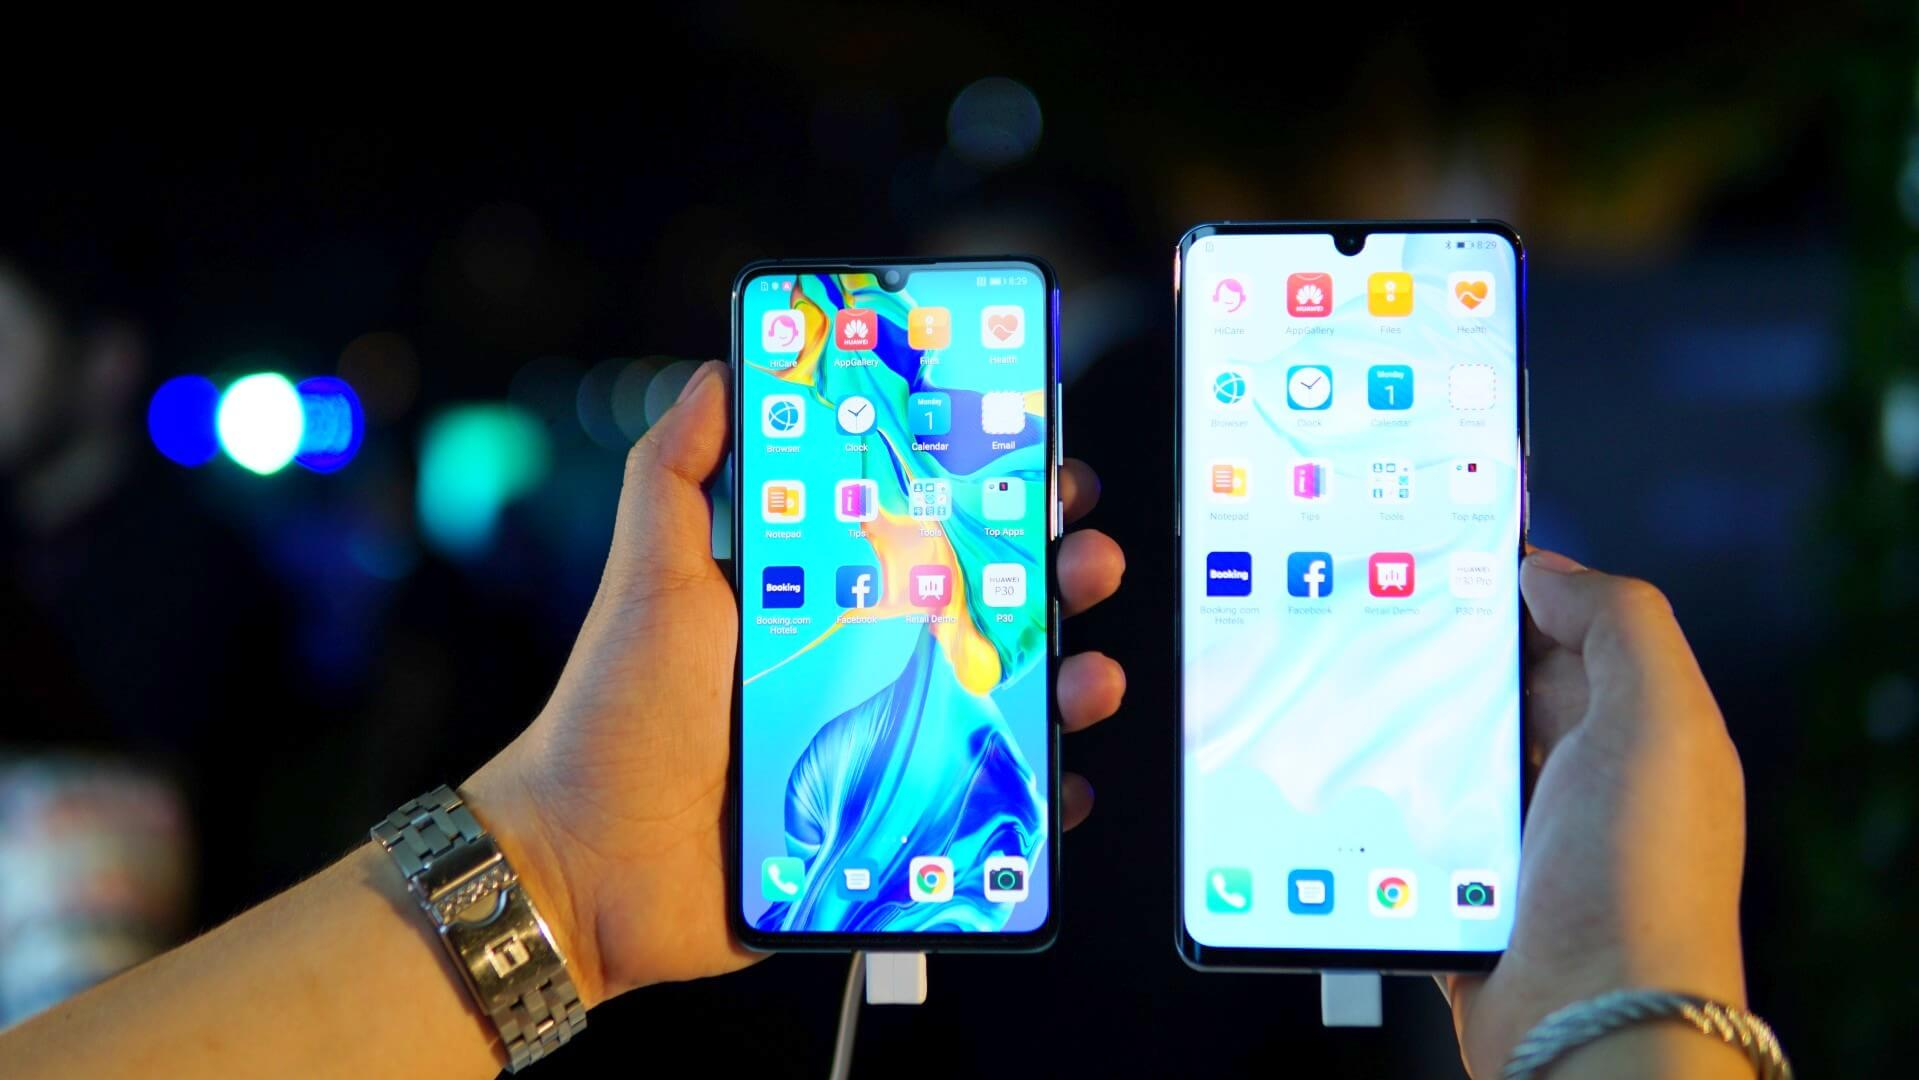 Huawei P30 Series Officially Launched In The UAE